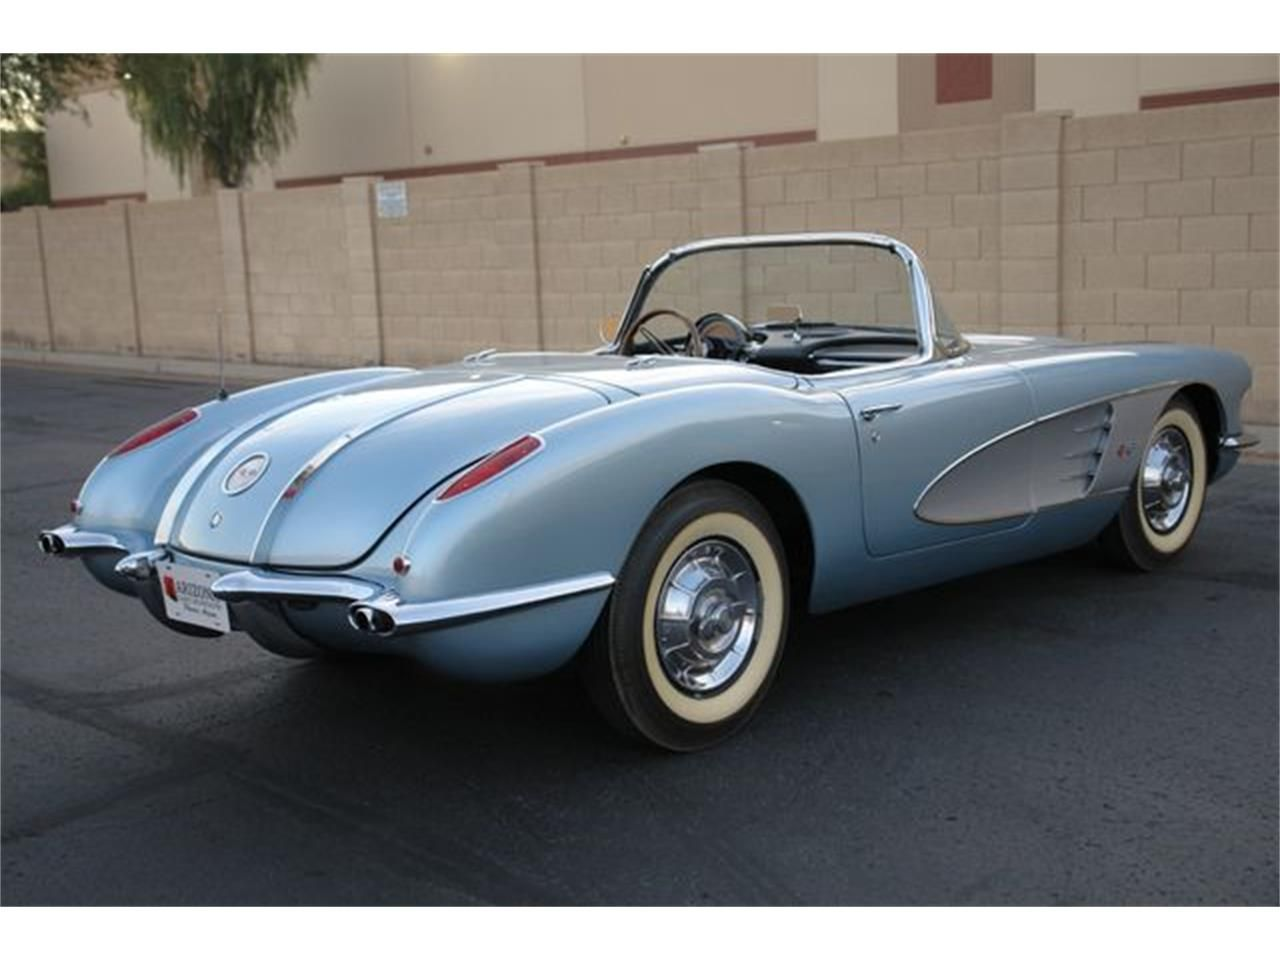 Large Photo of '58 Corvette 79,950.00 Offered by